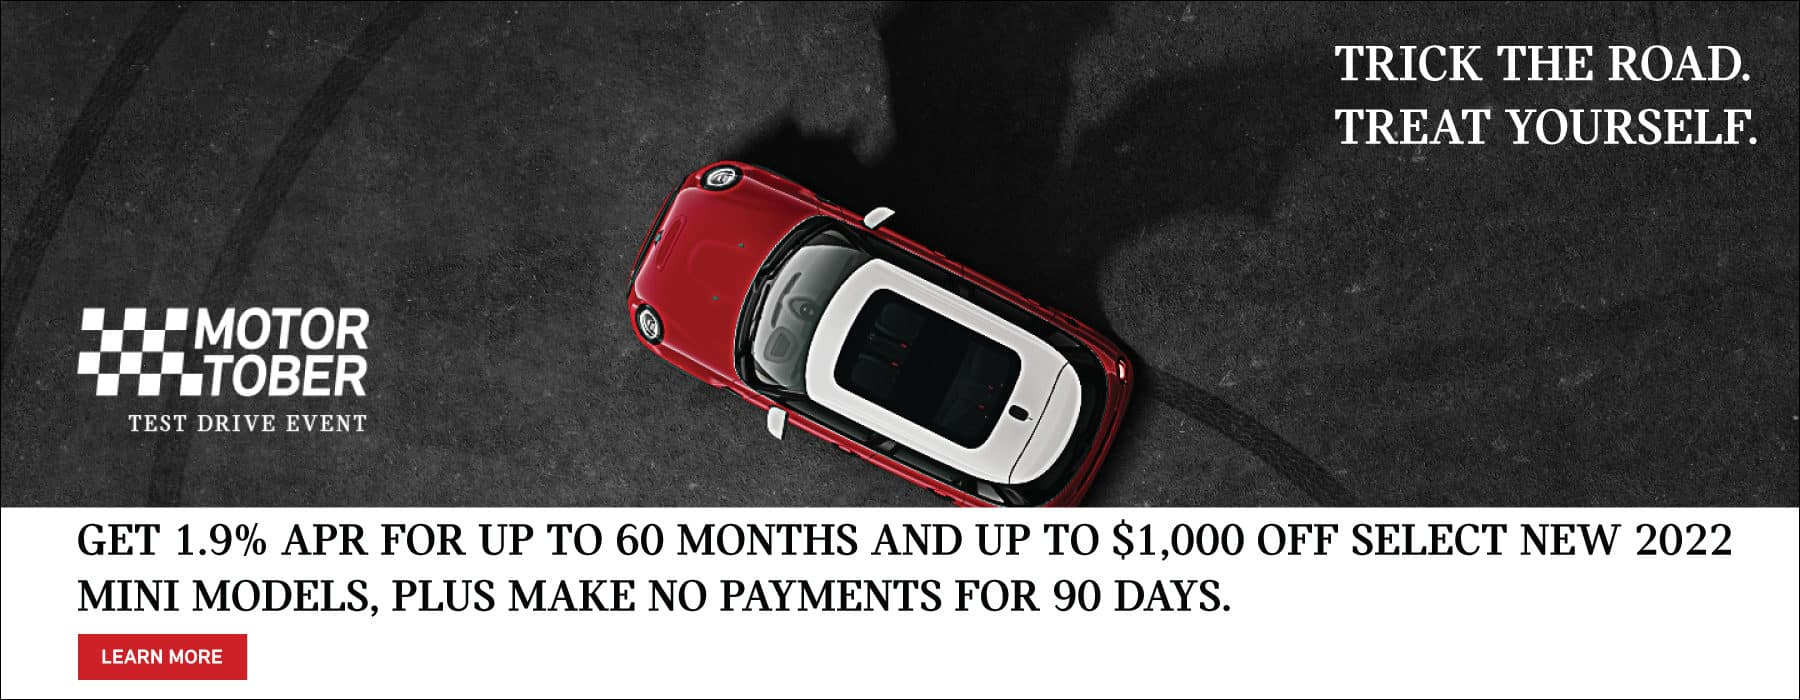 Get 1.9% APR for up to 60 months and up to $1,000 off select 2022 MINI models, plus make no payments for 90 days. See dealer for full details. Click to view inventory.Image shows a red and white MINI vehicle parked on concrete in front of the shadow of a bat.